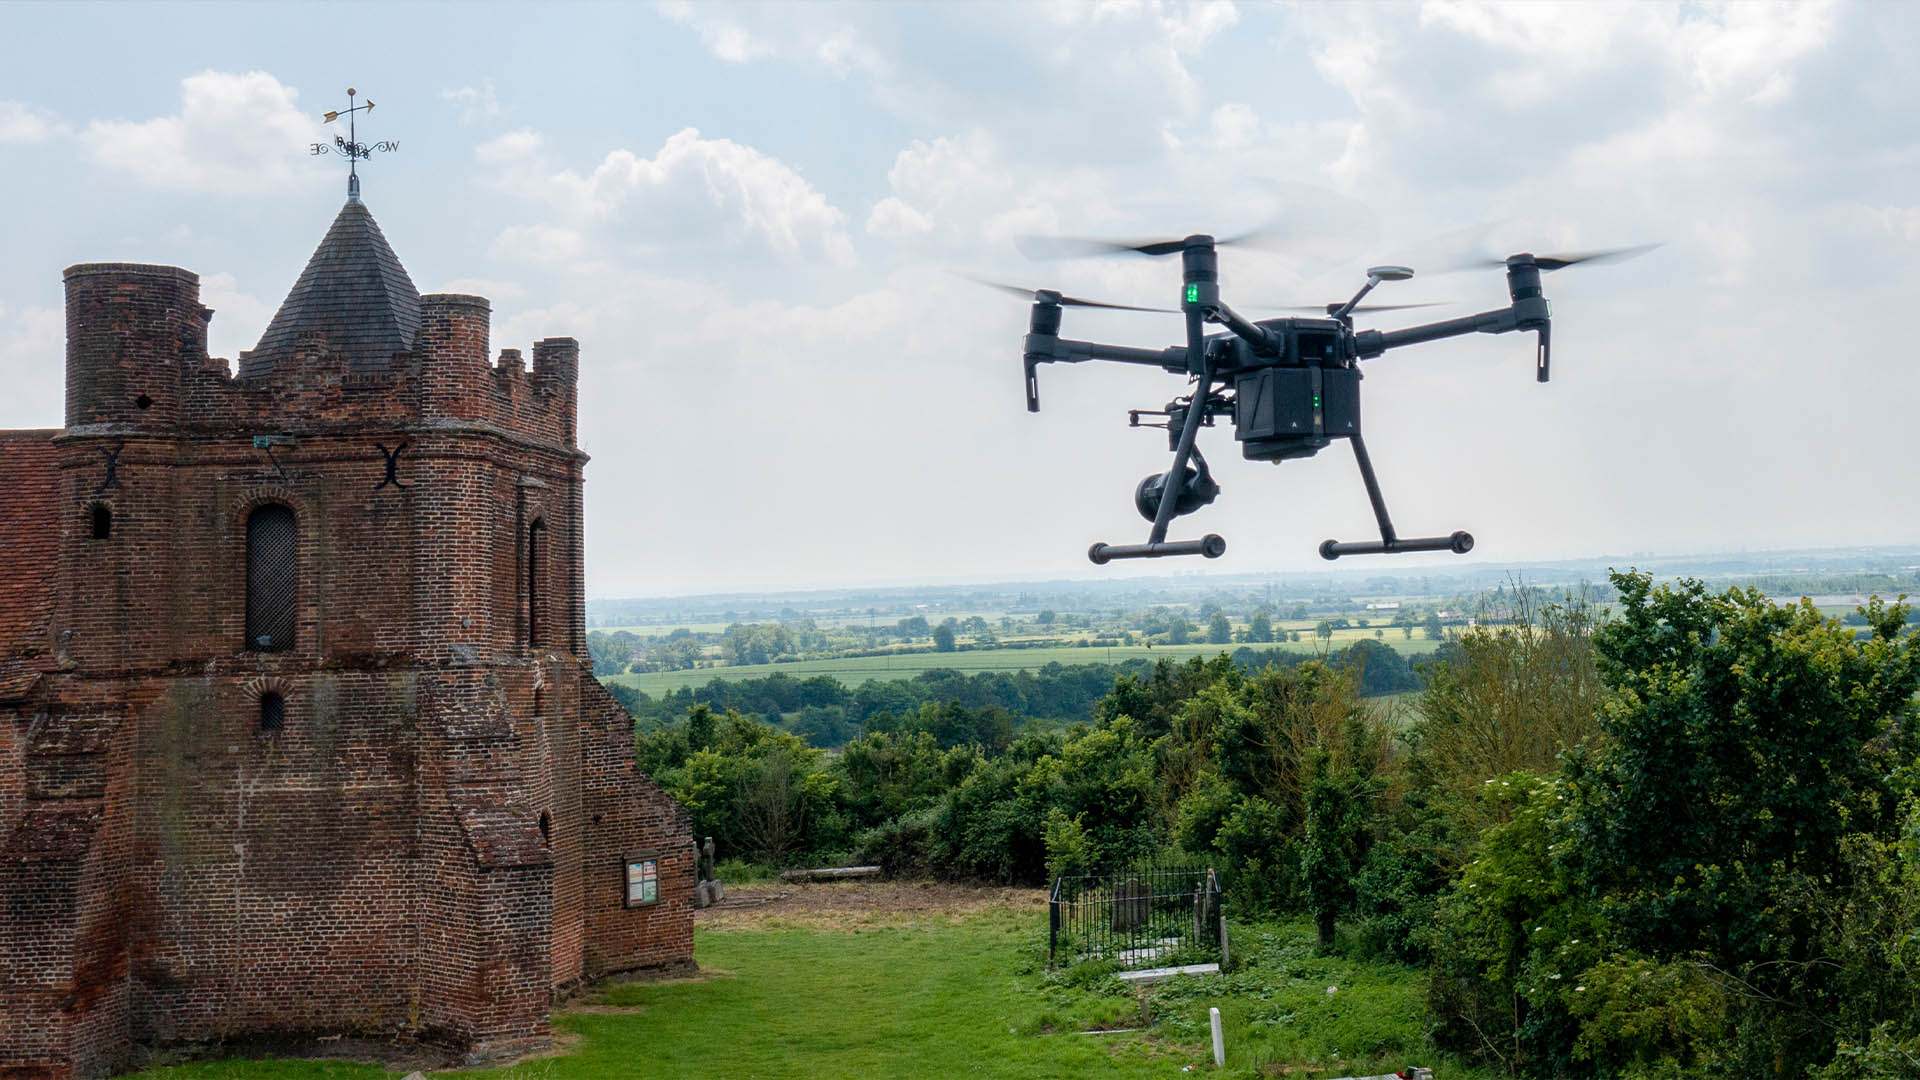 RMC drone performing aerial modelling of church